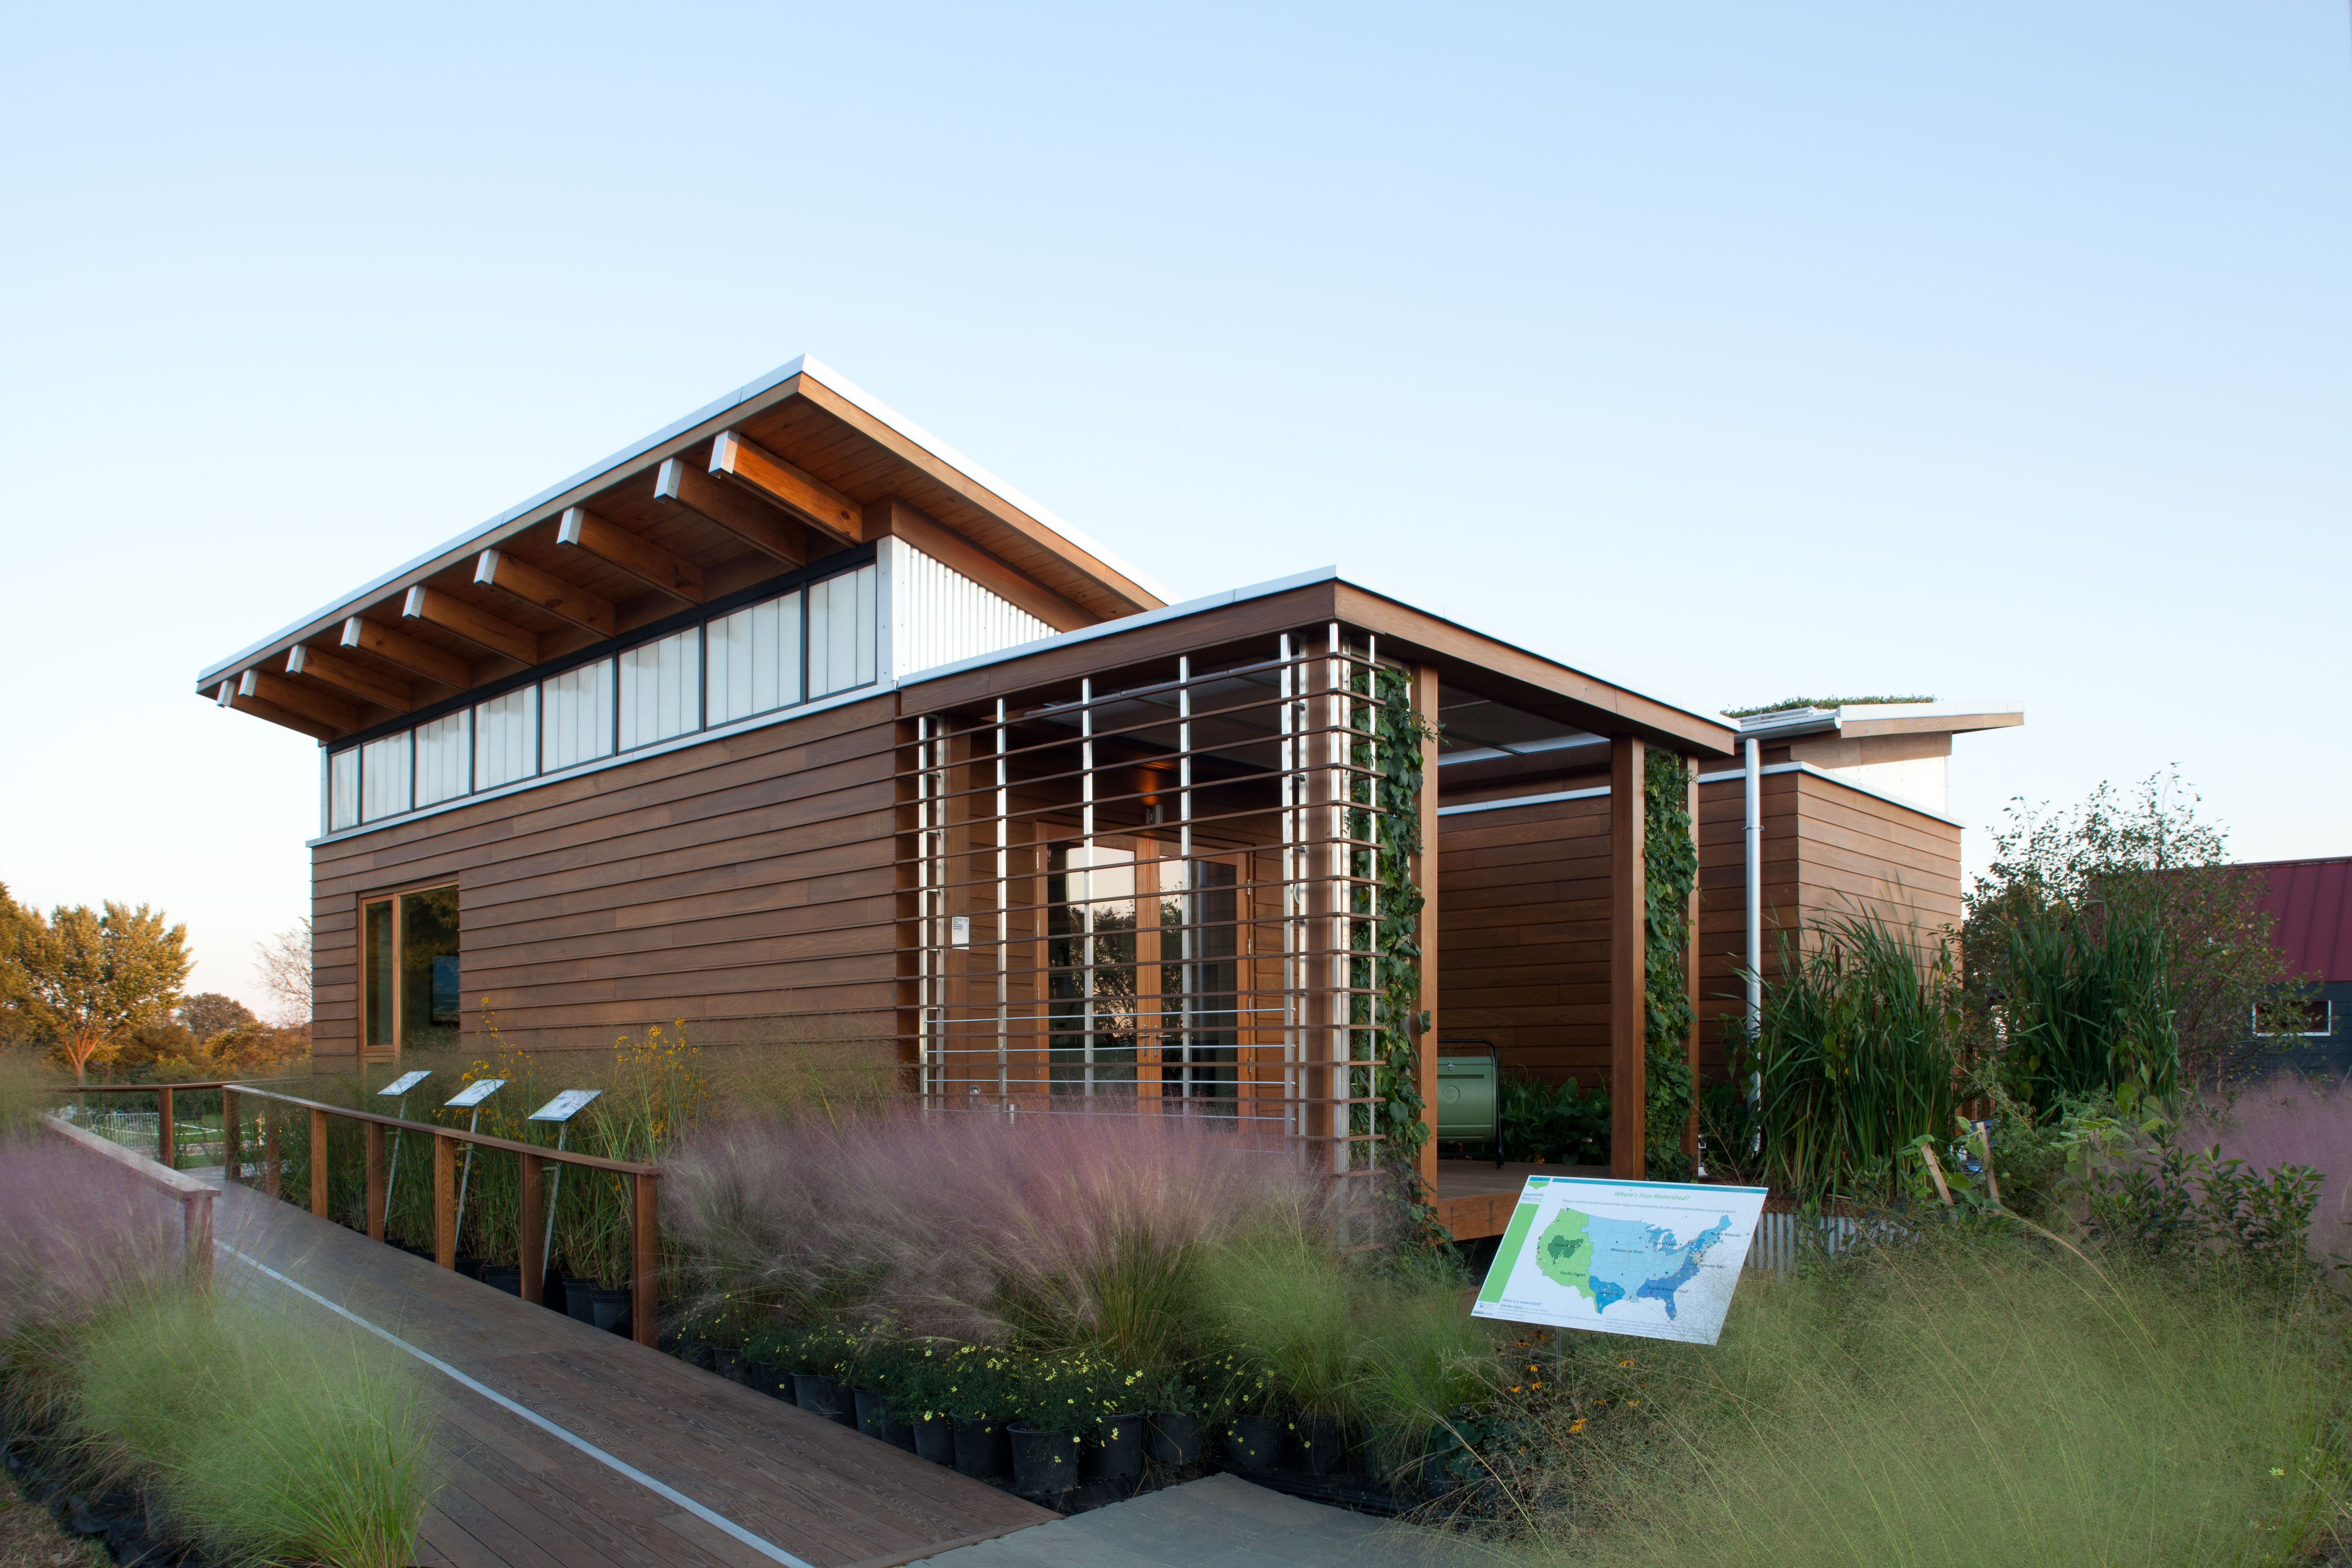 Exterior architectural photograph of Maryland's entry in the U.S. Department of Energy Solar Decathlon 2011, Washington D.C., Sept. 30, 2011.